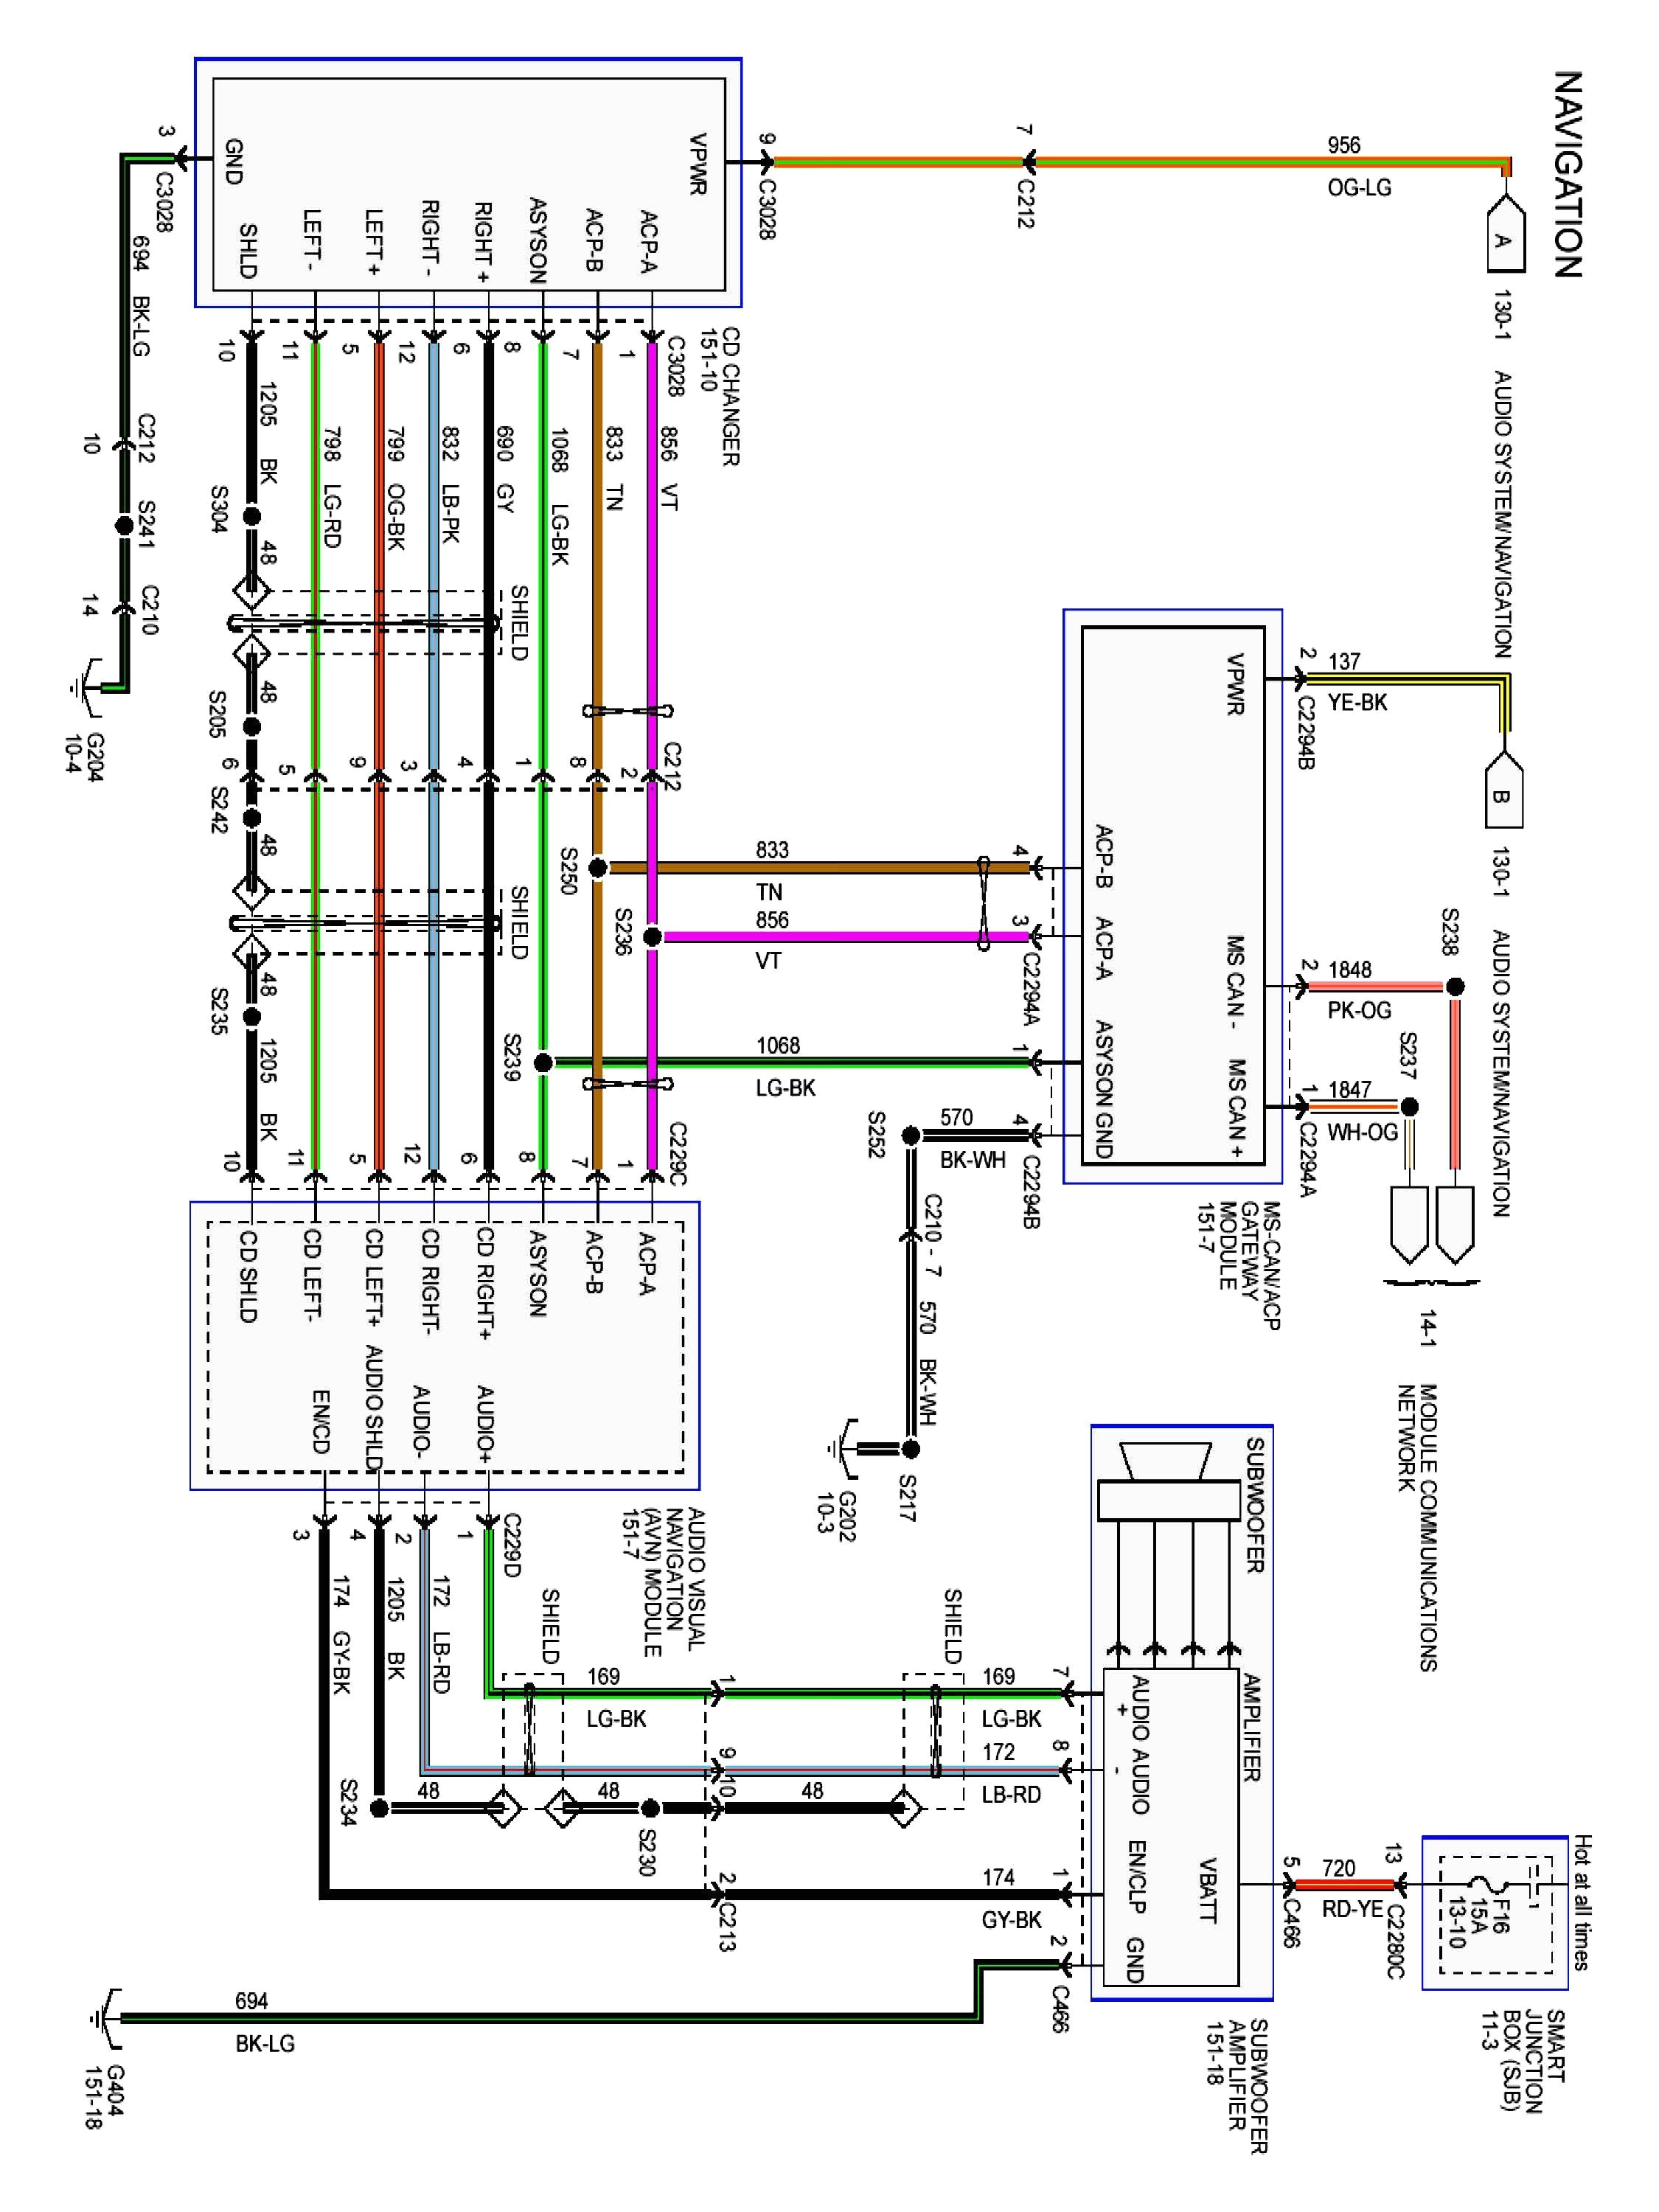 08 ford focus wiring harness diagram wiring diagram used 2005 ford focus wiring harness diagram 2008